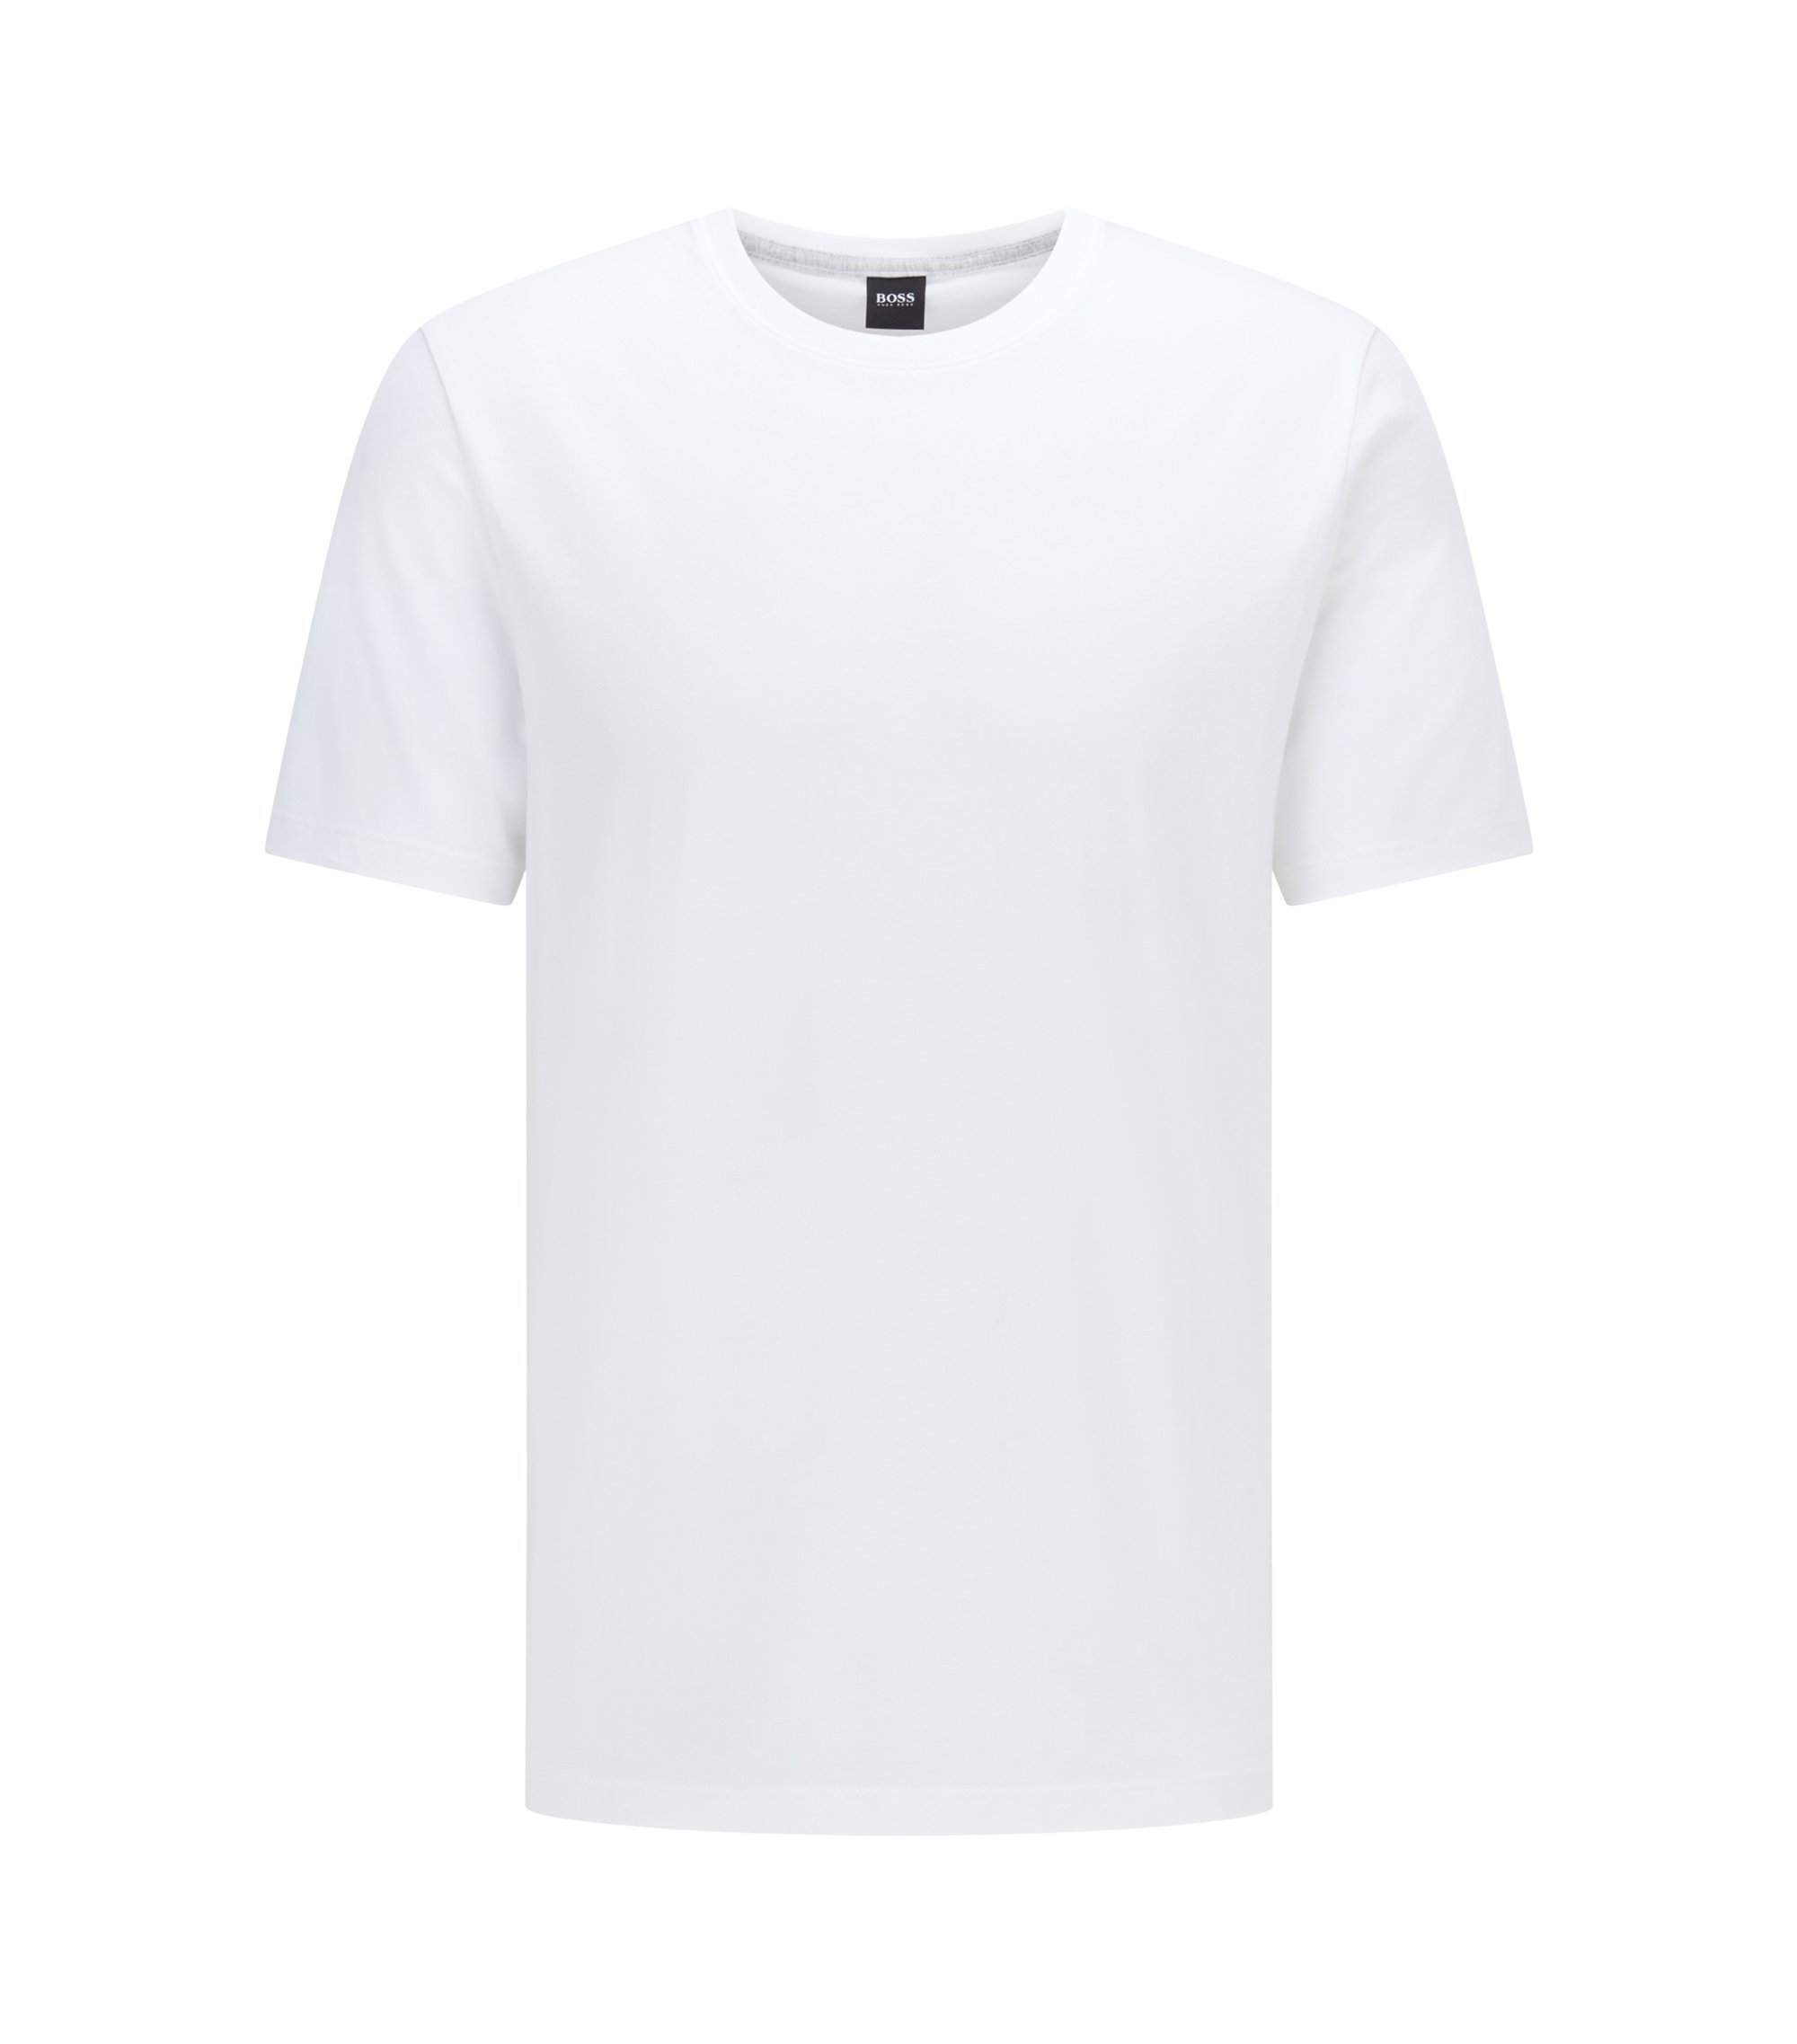 Regular-fit T-shirt in soft cotton, White